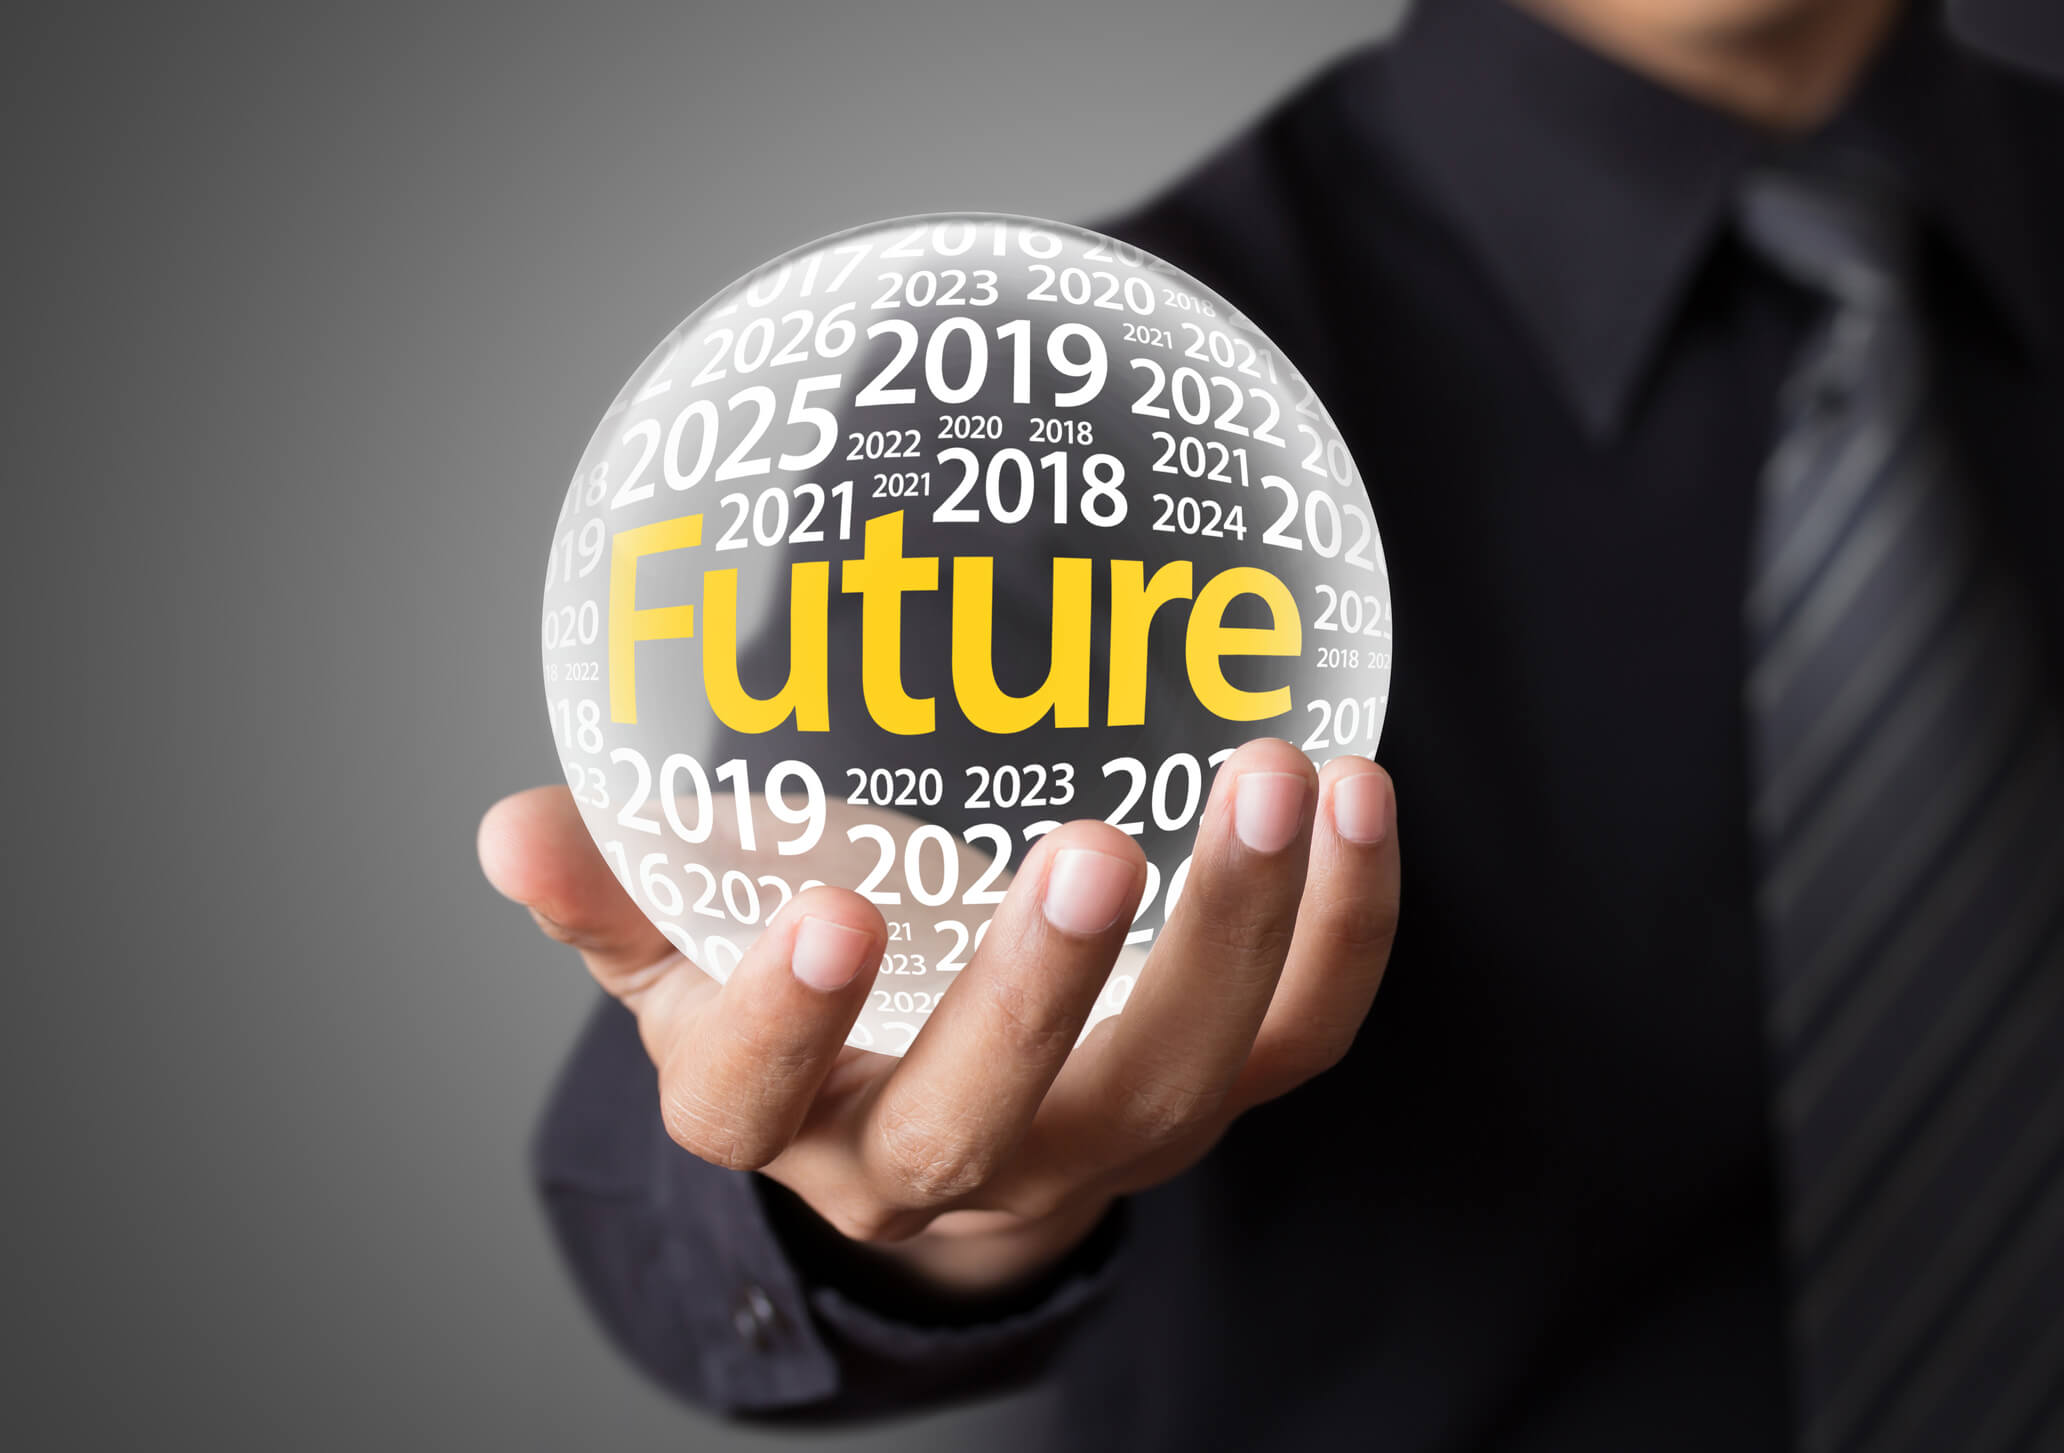 crystal ball business future - Complete Controller